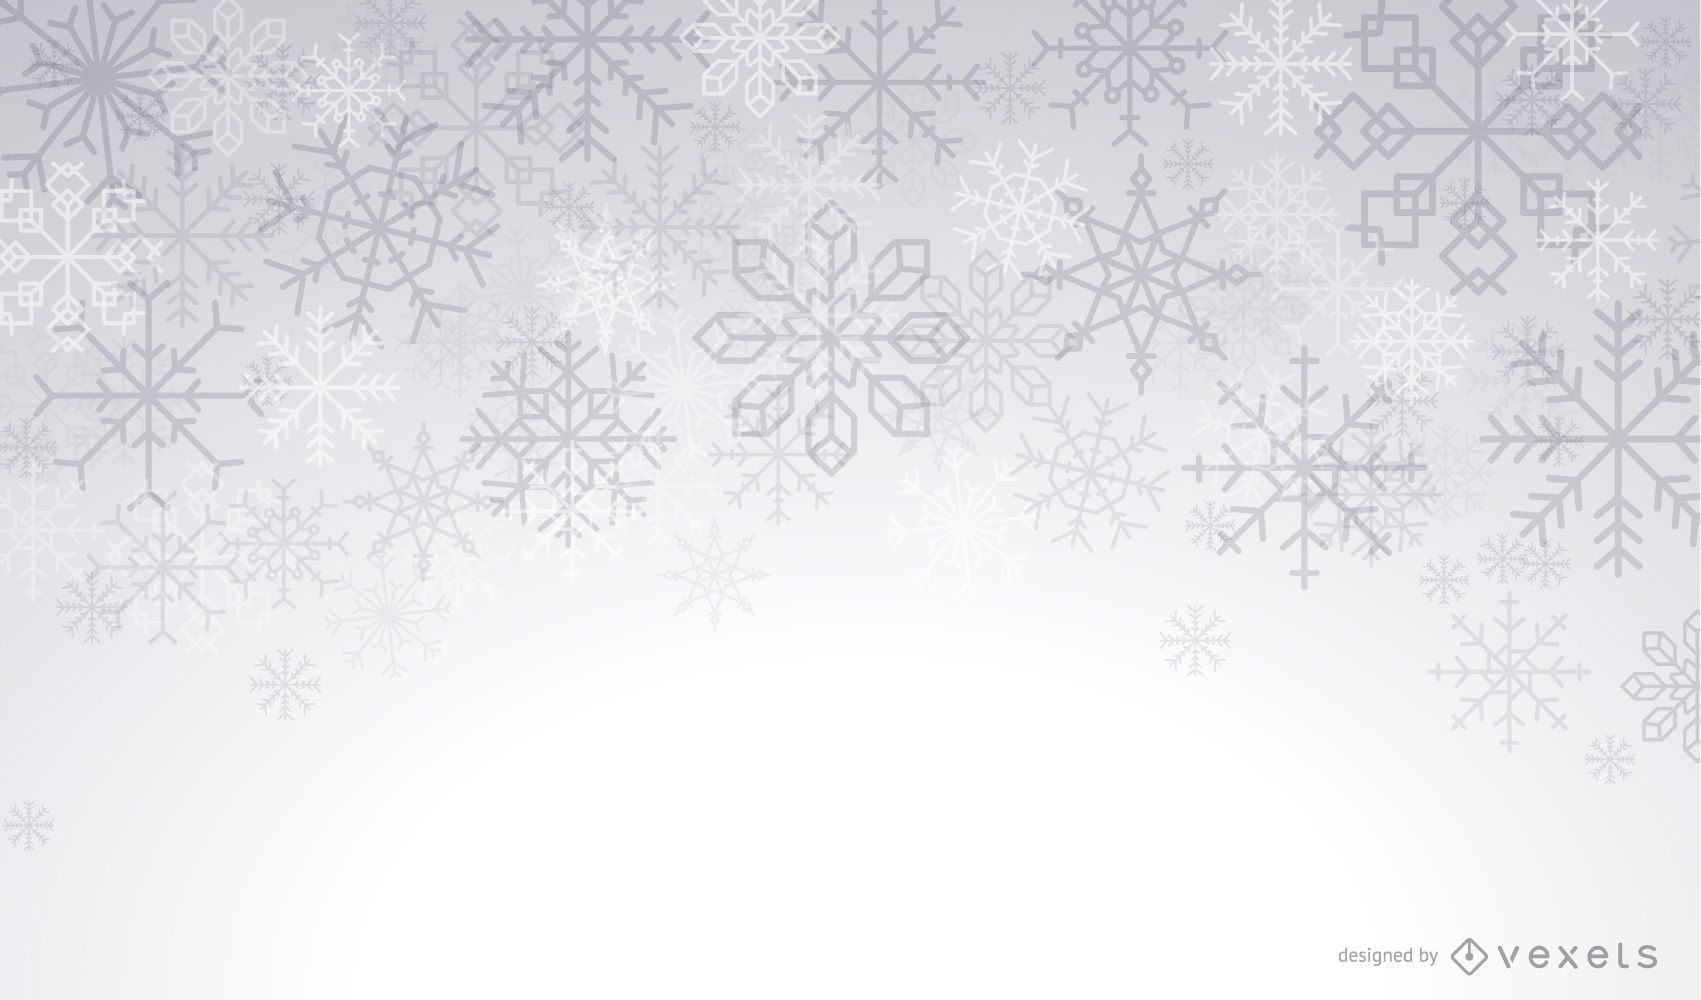 Artistic snowflakes winter background